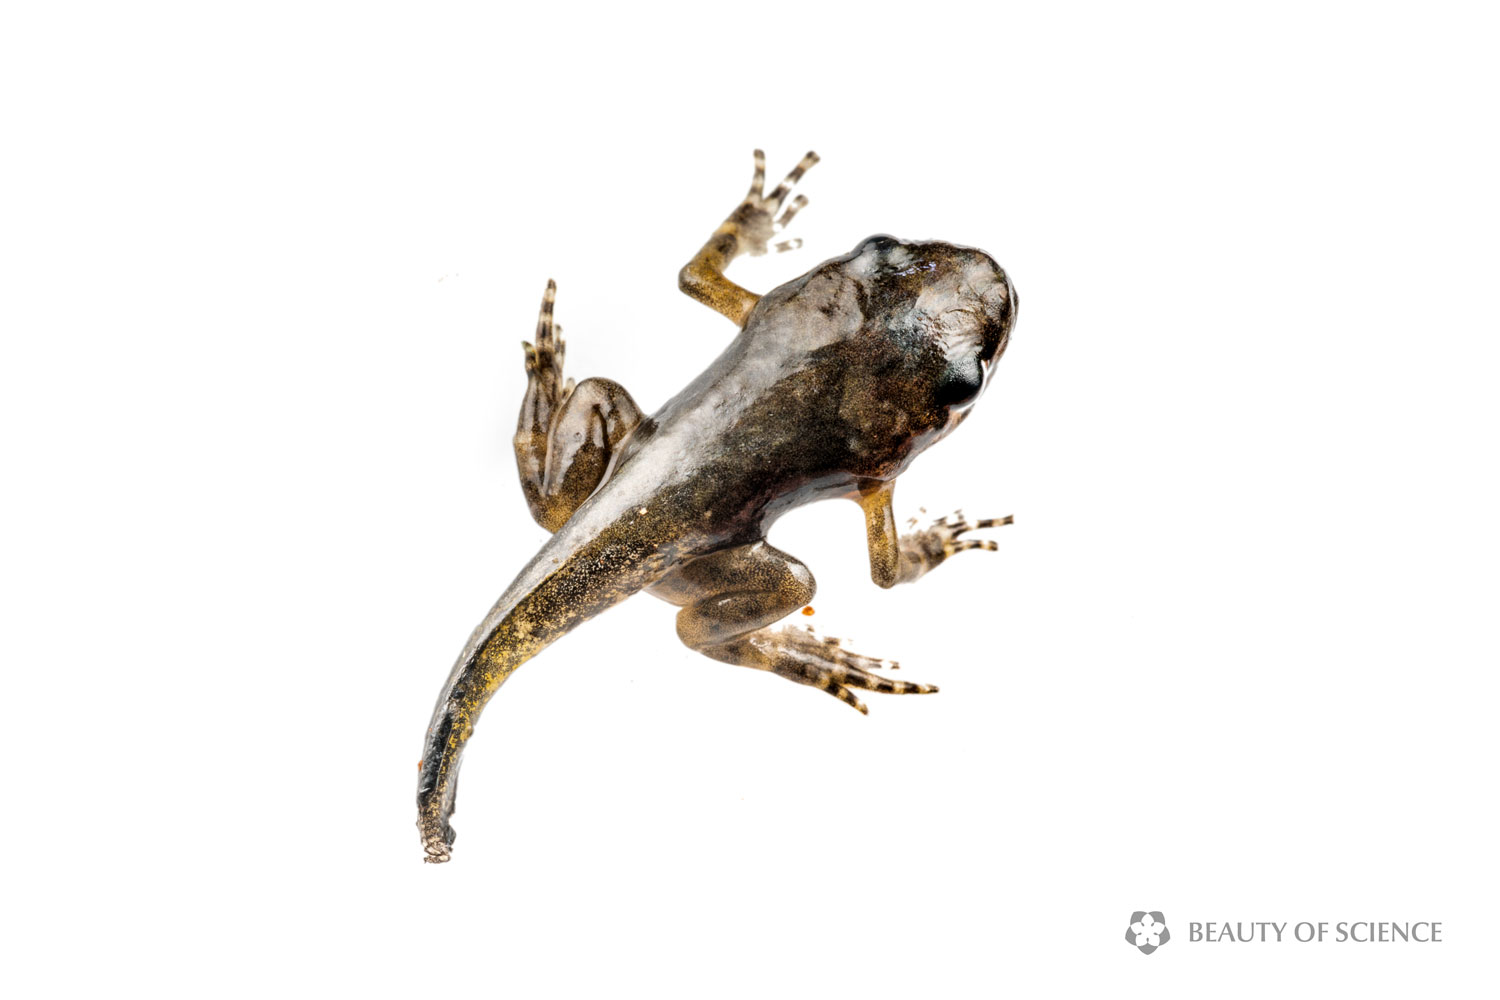 sichuan-narrow-mouthed-frog-life-cycle-07.jpg